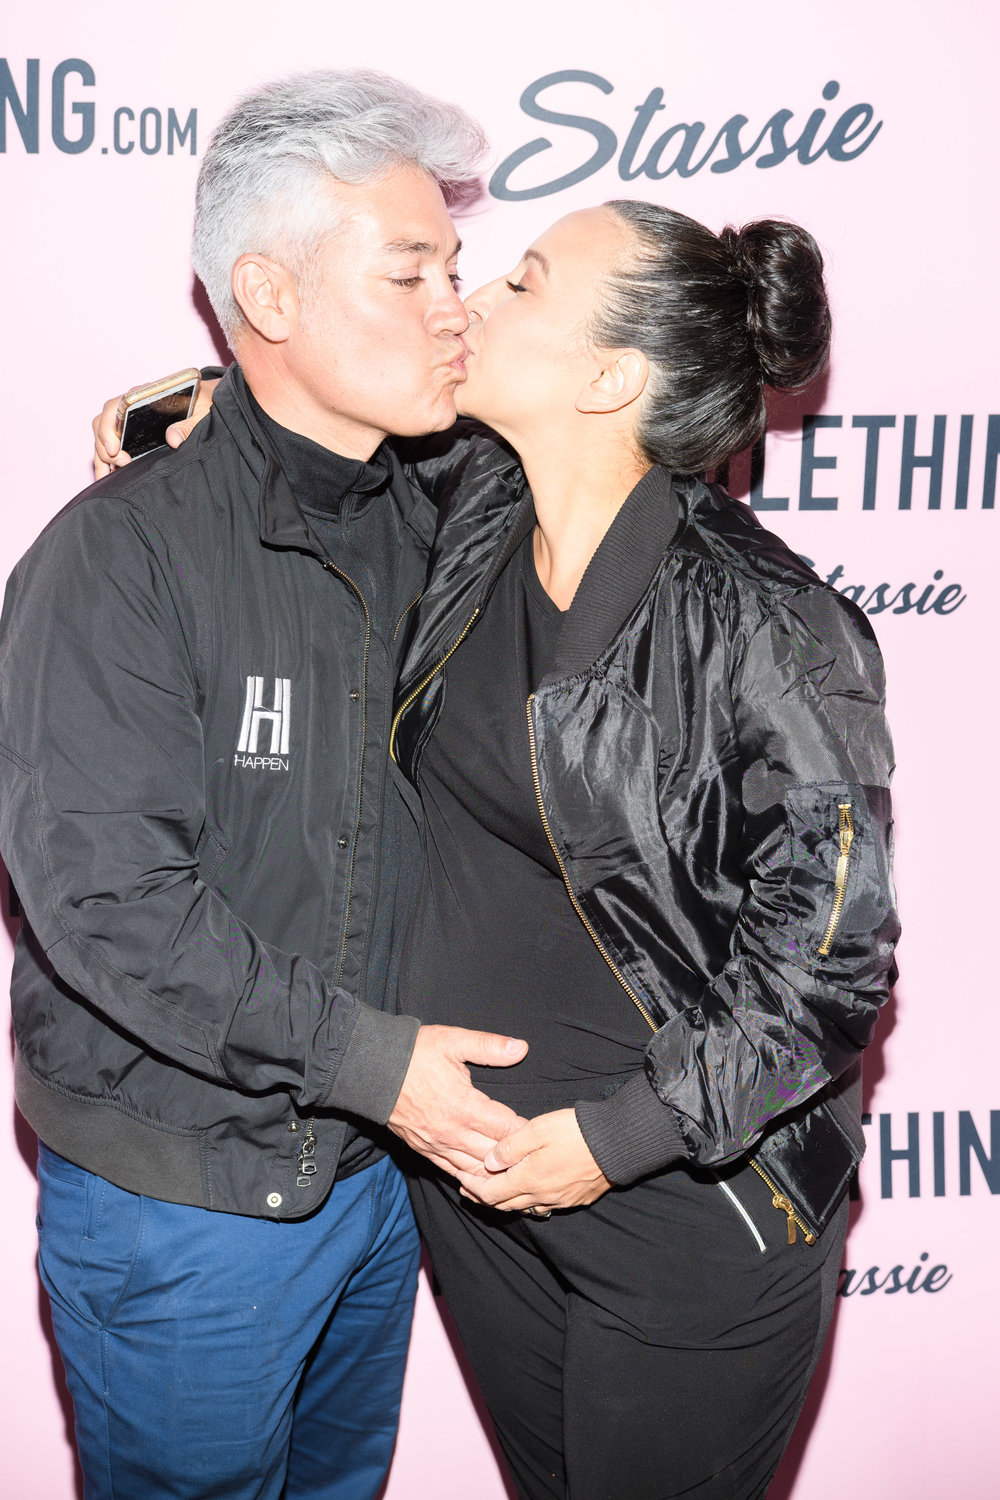 PrettyLittleThing New PLT Shape Collection with Stassie Celebrity Launch Party Herick Serna and Lori of WOTP together enjoy a kiss.jpg